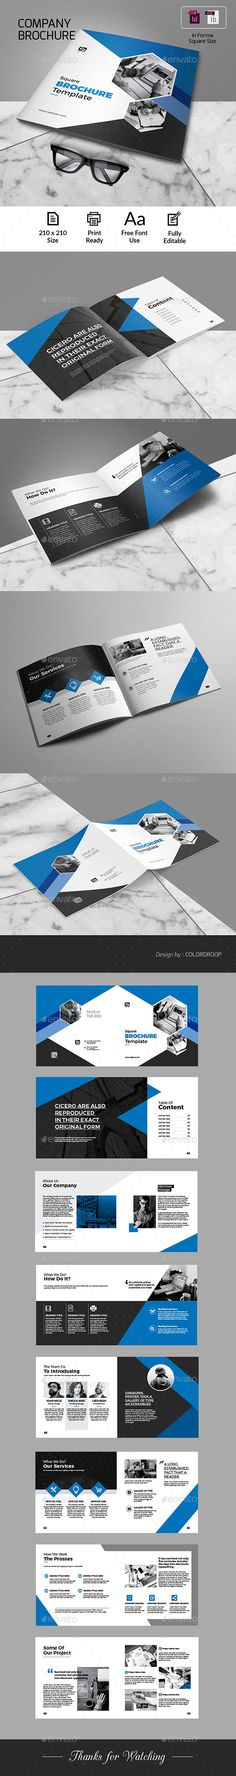 Square Brochure Template InDesign INDD